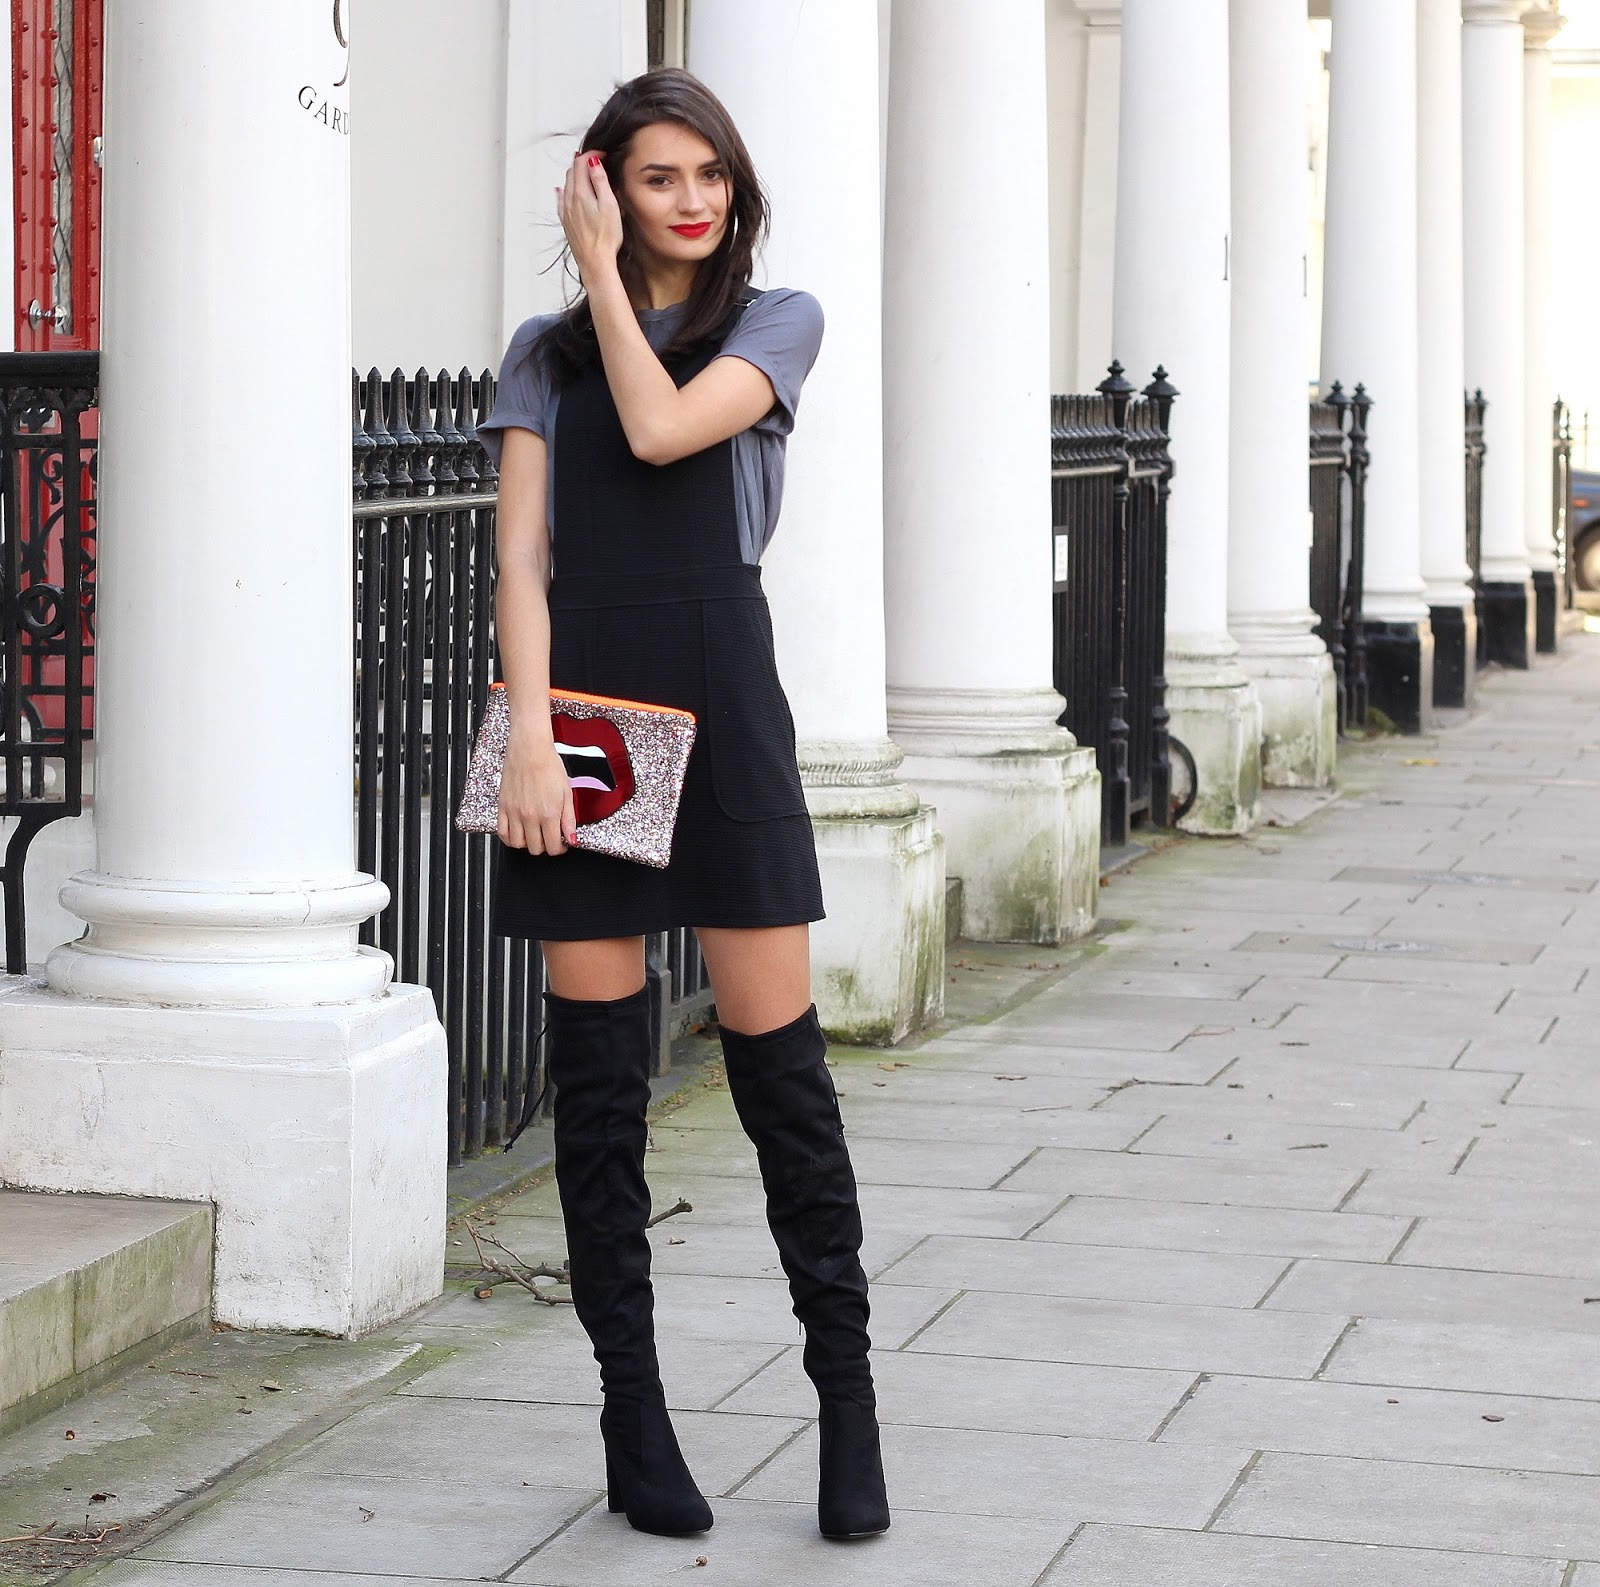 peexo fashion blogger wearing black pinafore dress and knee high boots